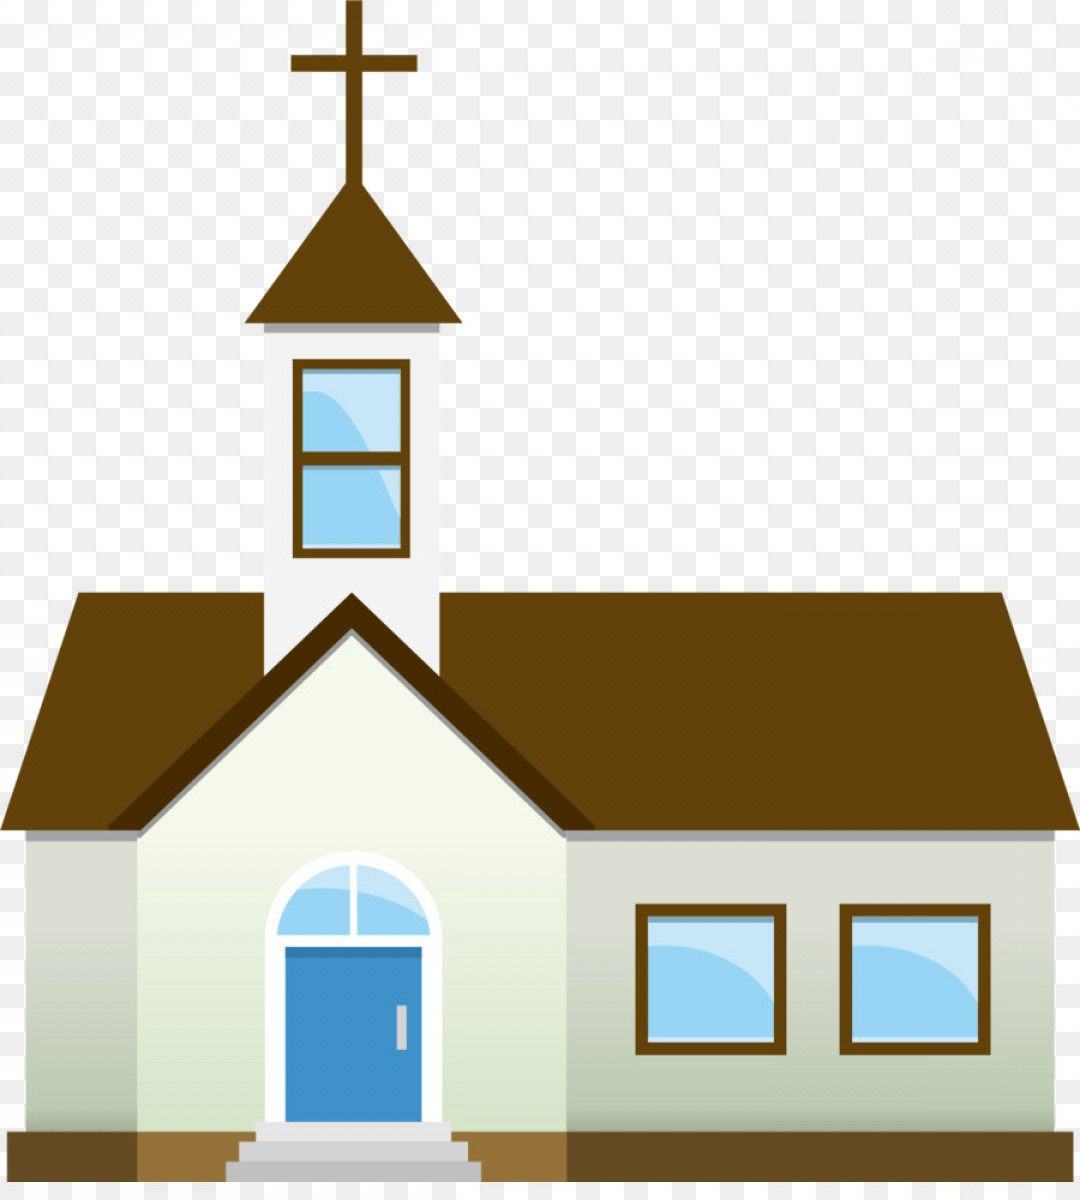 Png Church Cartoon Architecture Church Png Vector Mate.